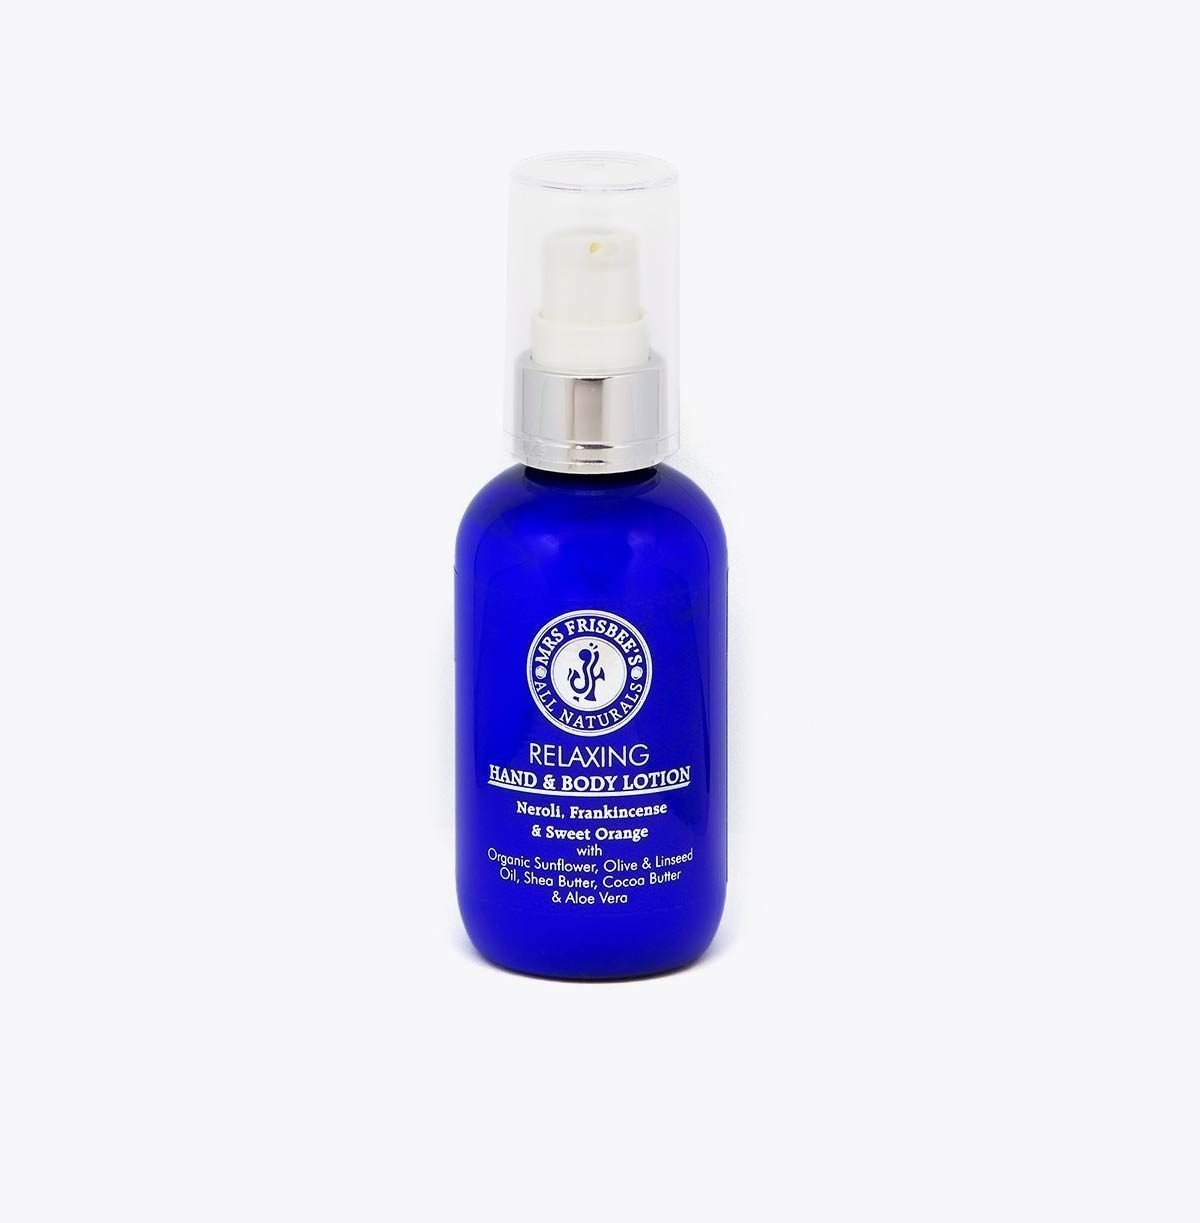 Organic Body Lotion - relaxing hand and body lotion with pure essential oils.